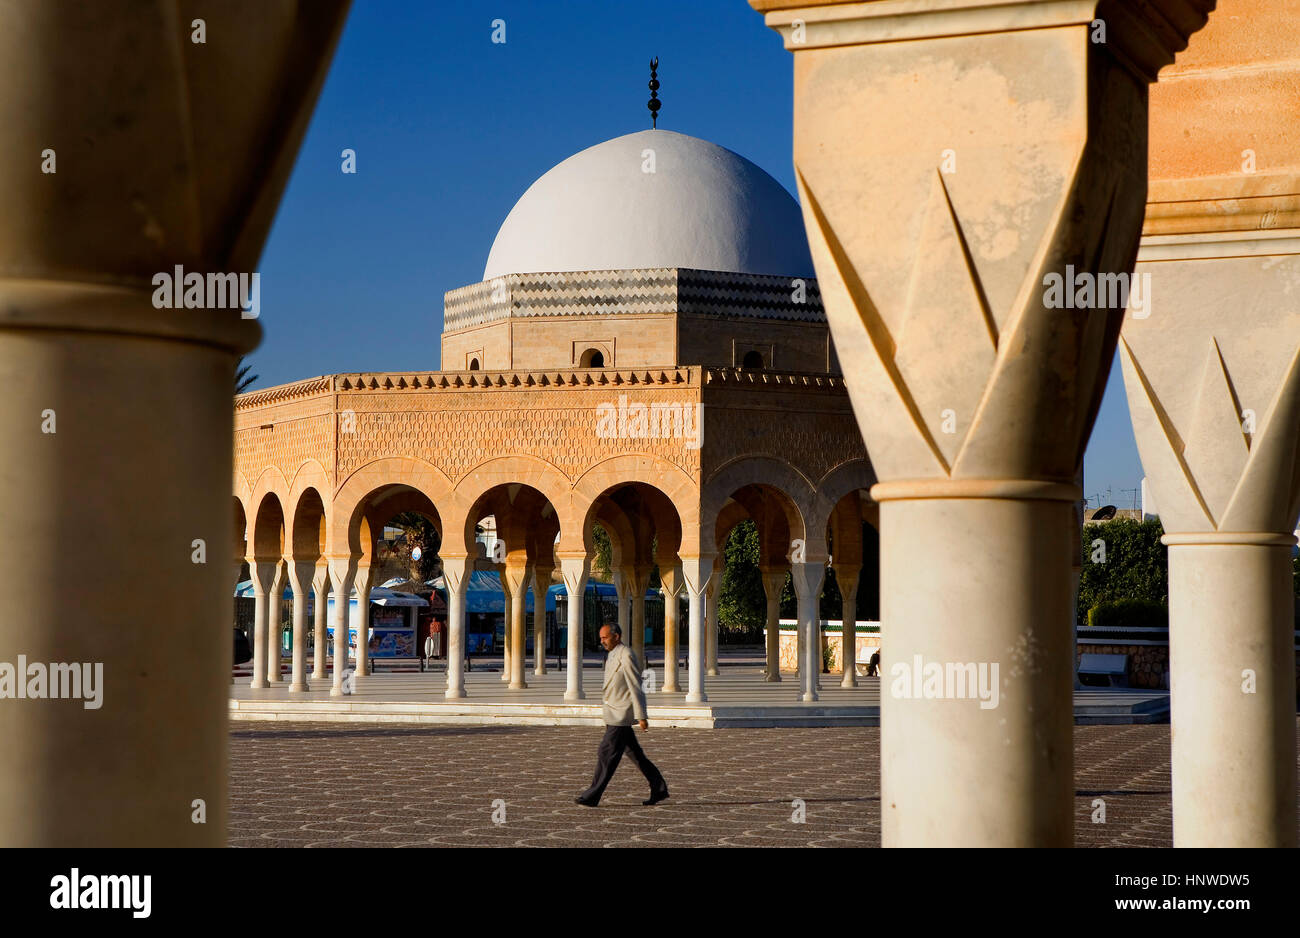 Tomb at entrance to bourguiba mausoleum, Tunez: Monastir Stock Photo